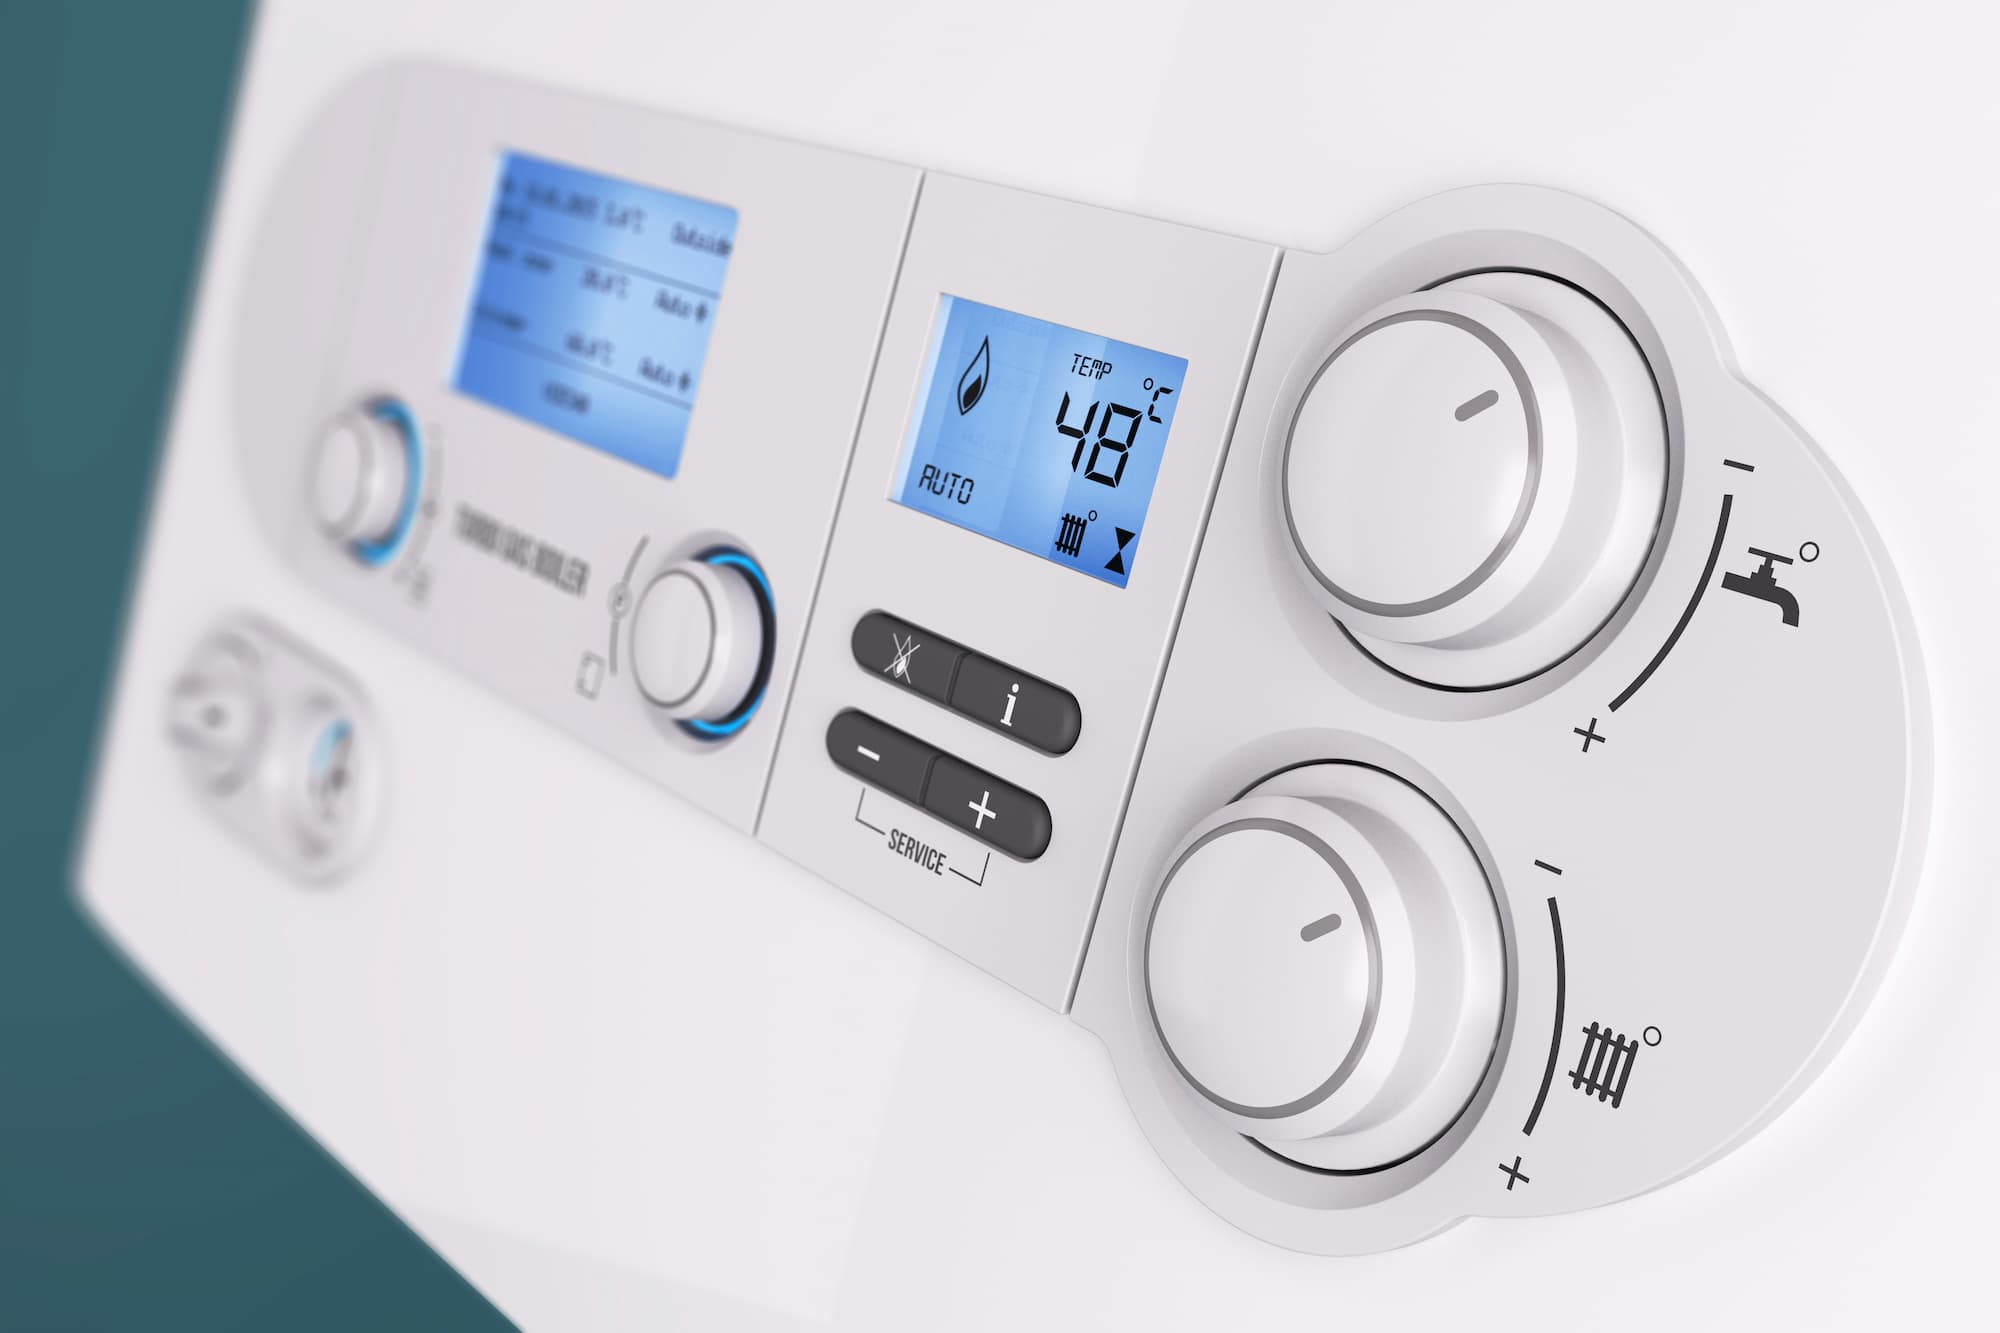 Picture of a boiler control panel